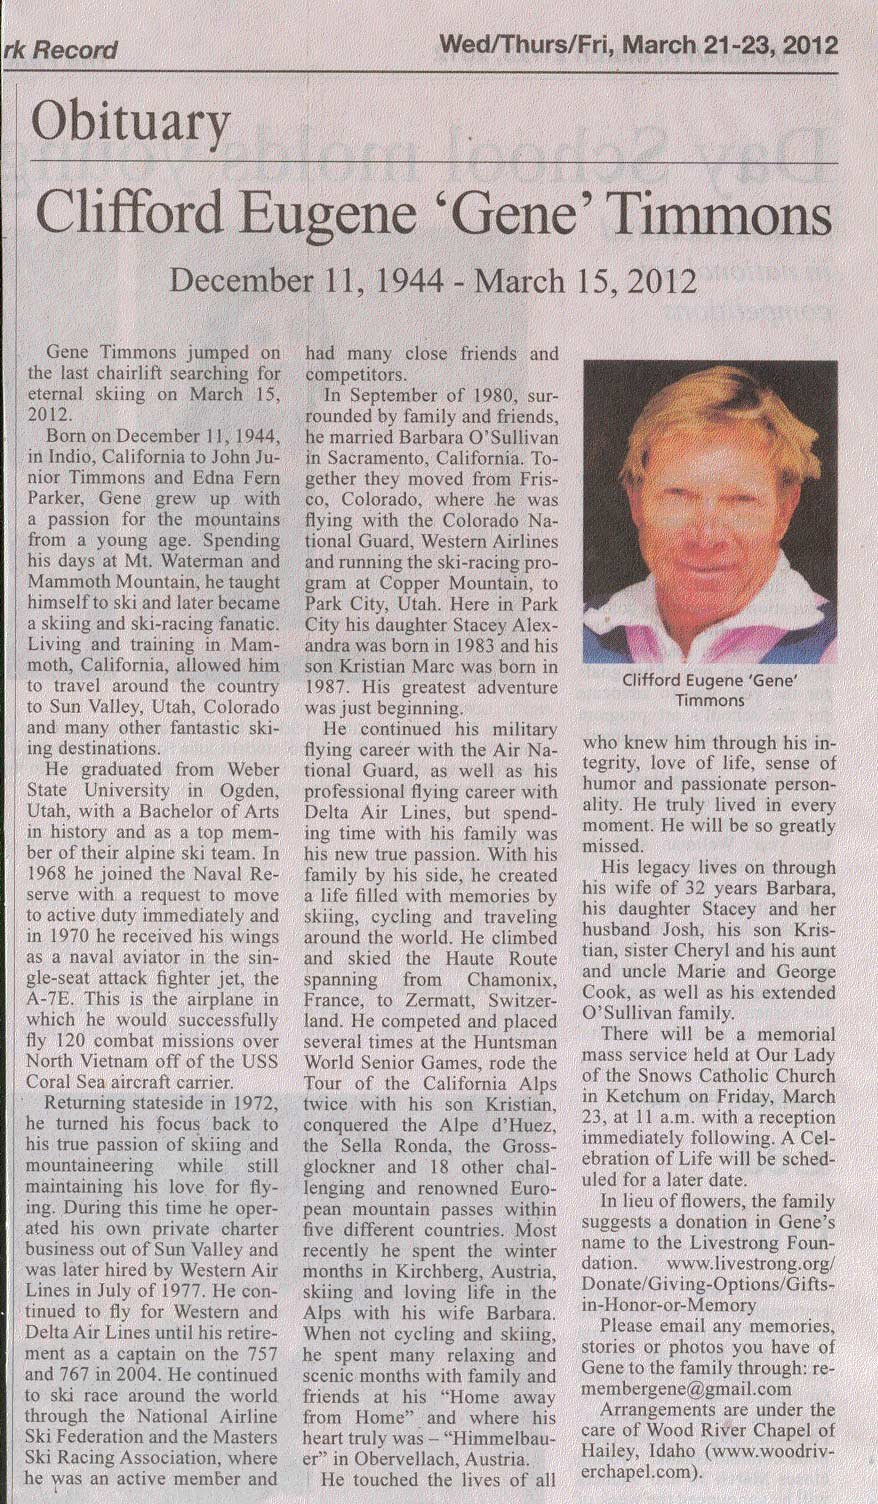 1944 to 2012 Gene Timmons Obituary